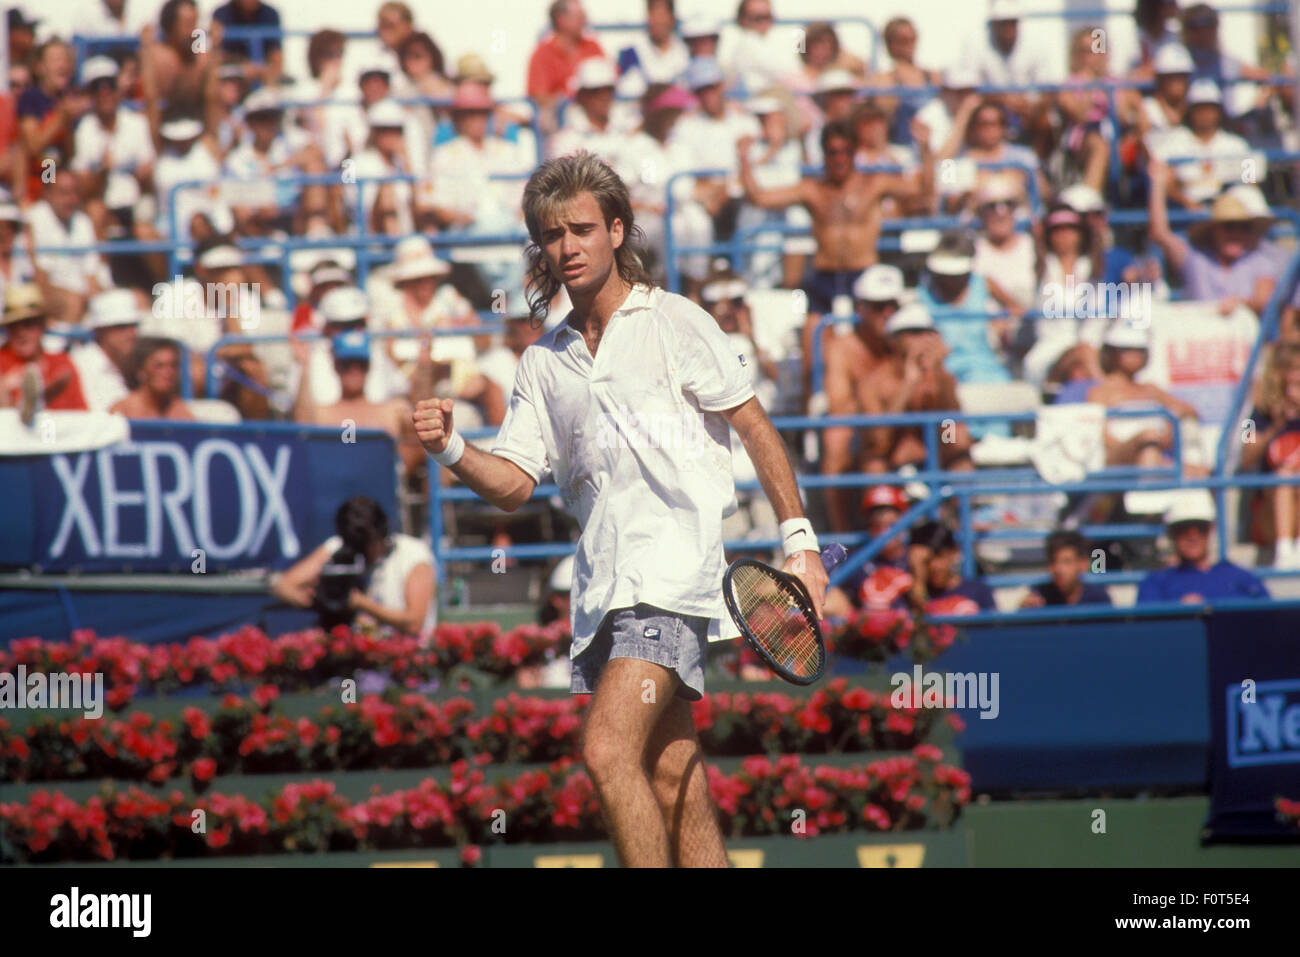 andre agassi stock photos andre agassi stock images alamy. Black Bedroom Furniture Sets. Home Design Ideas